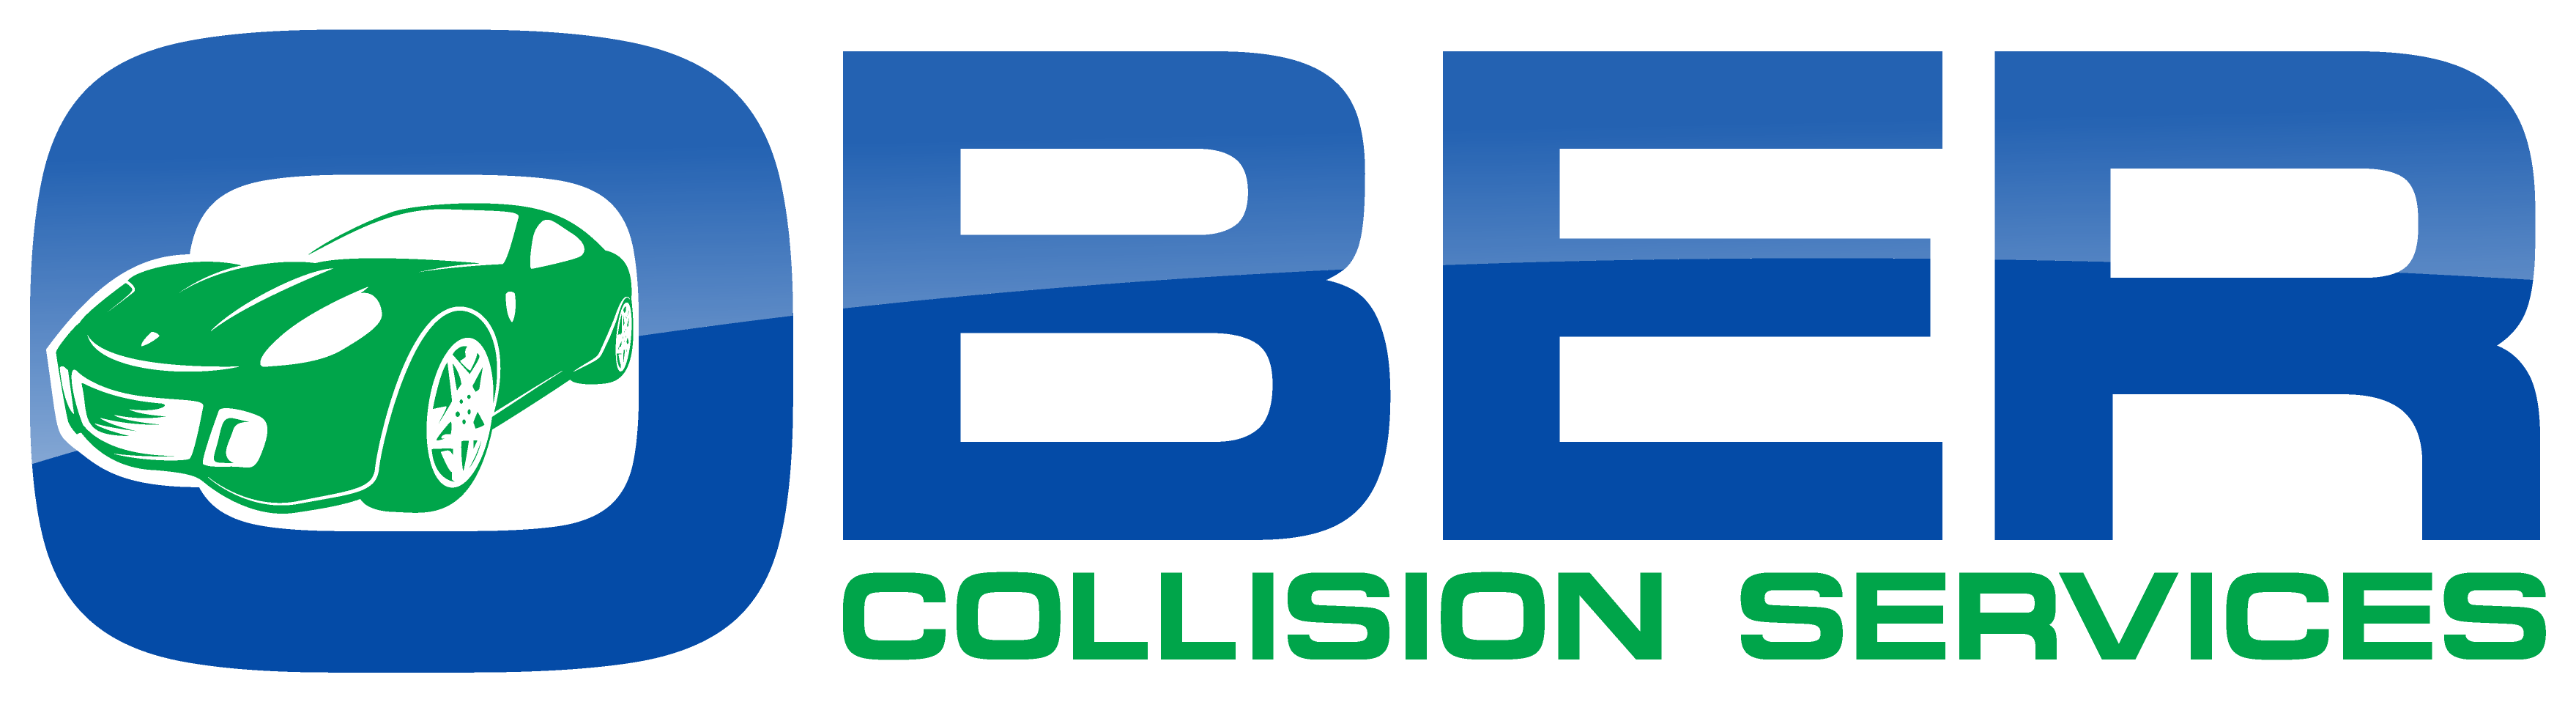 Ober Collision Services | Global Refinishing Solutions Consultant